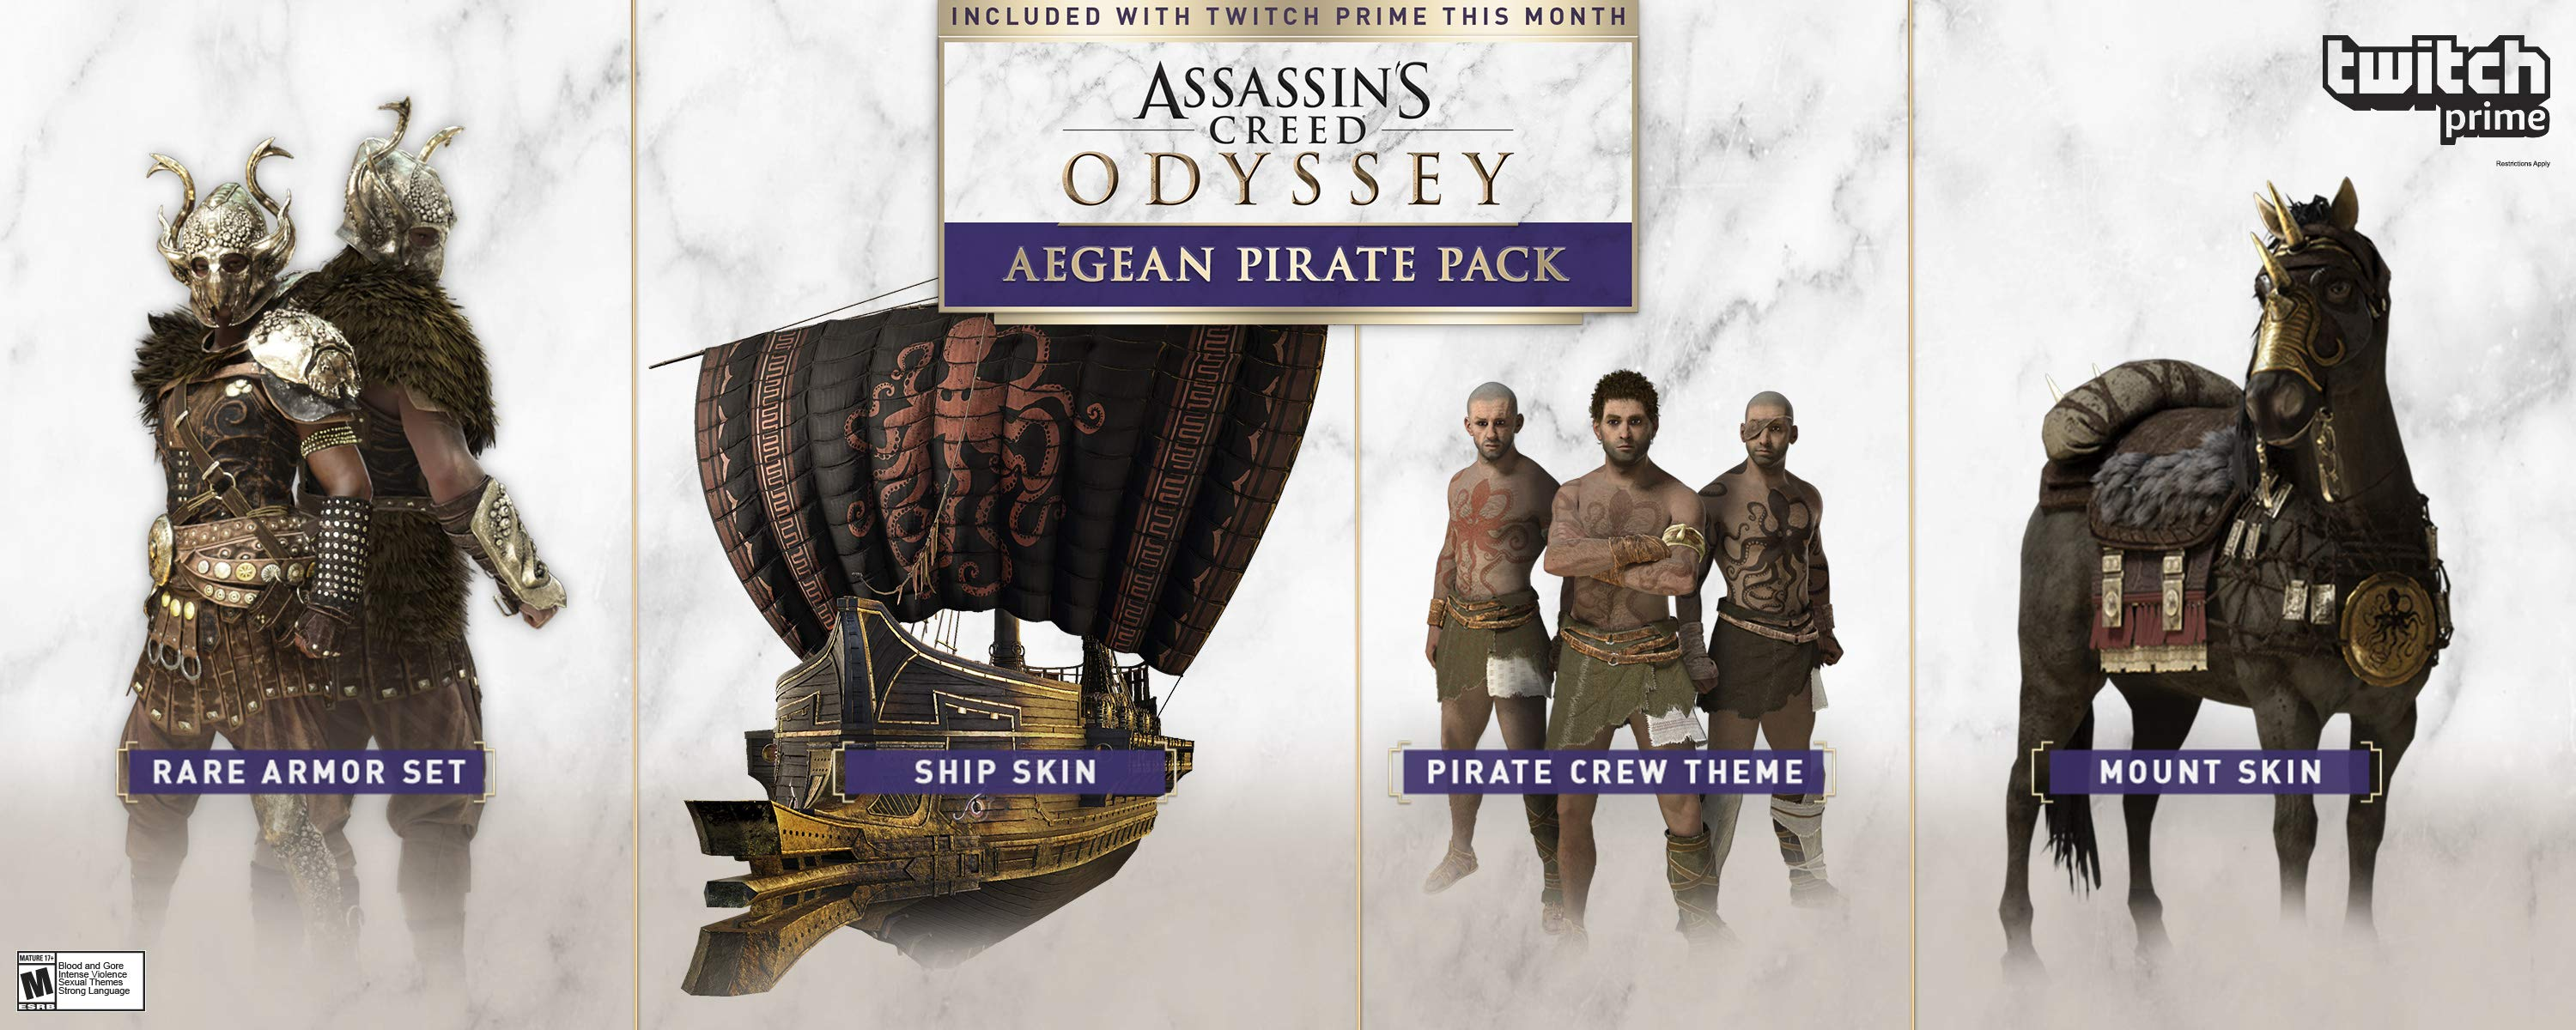 twitch prime assassin u2019s creed odyssey loot features a pirate ship skin and the atoll horse mount